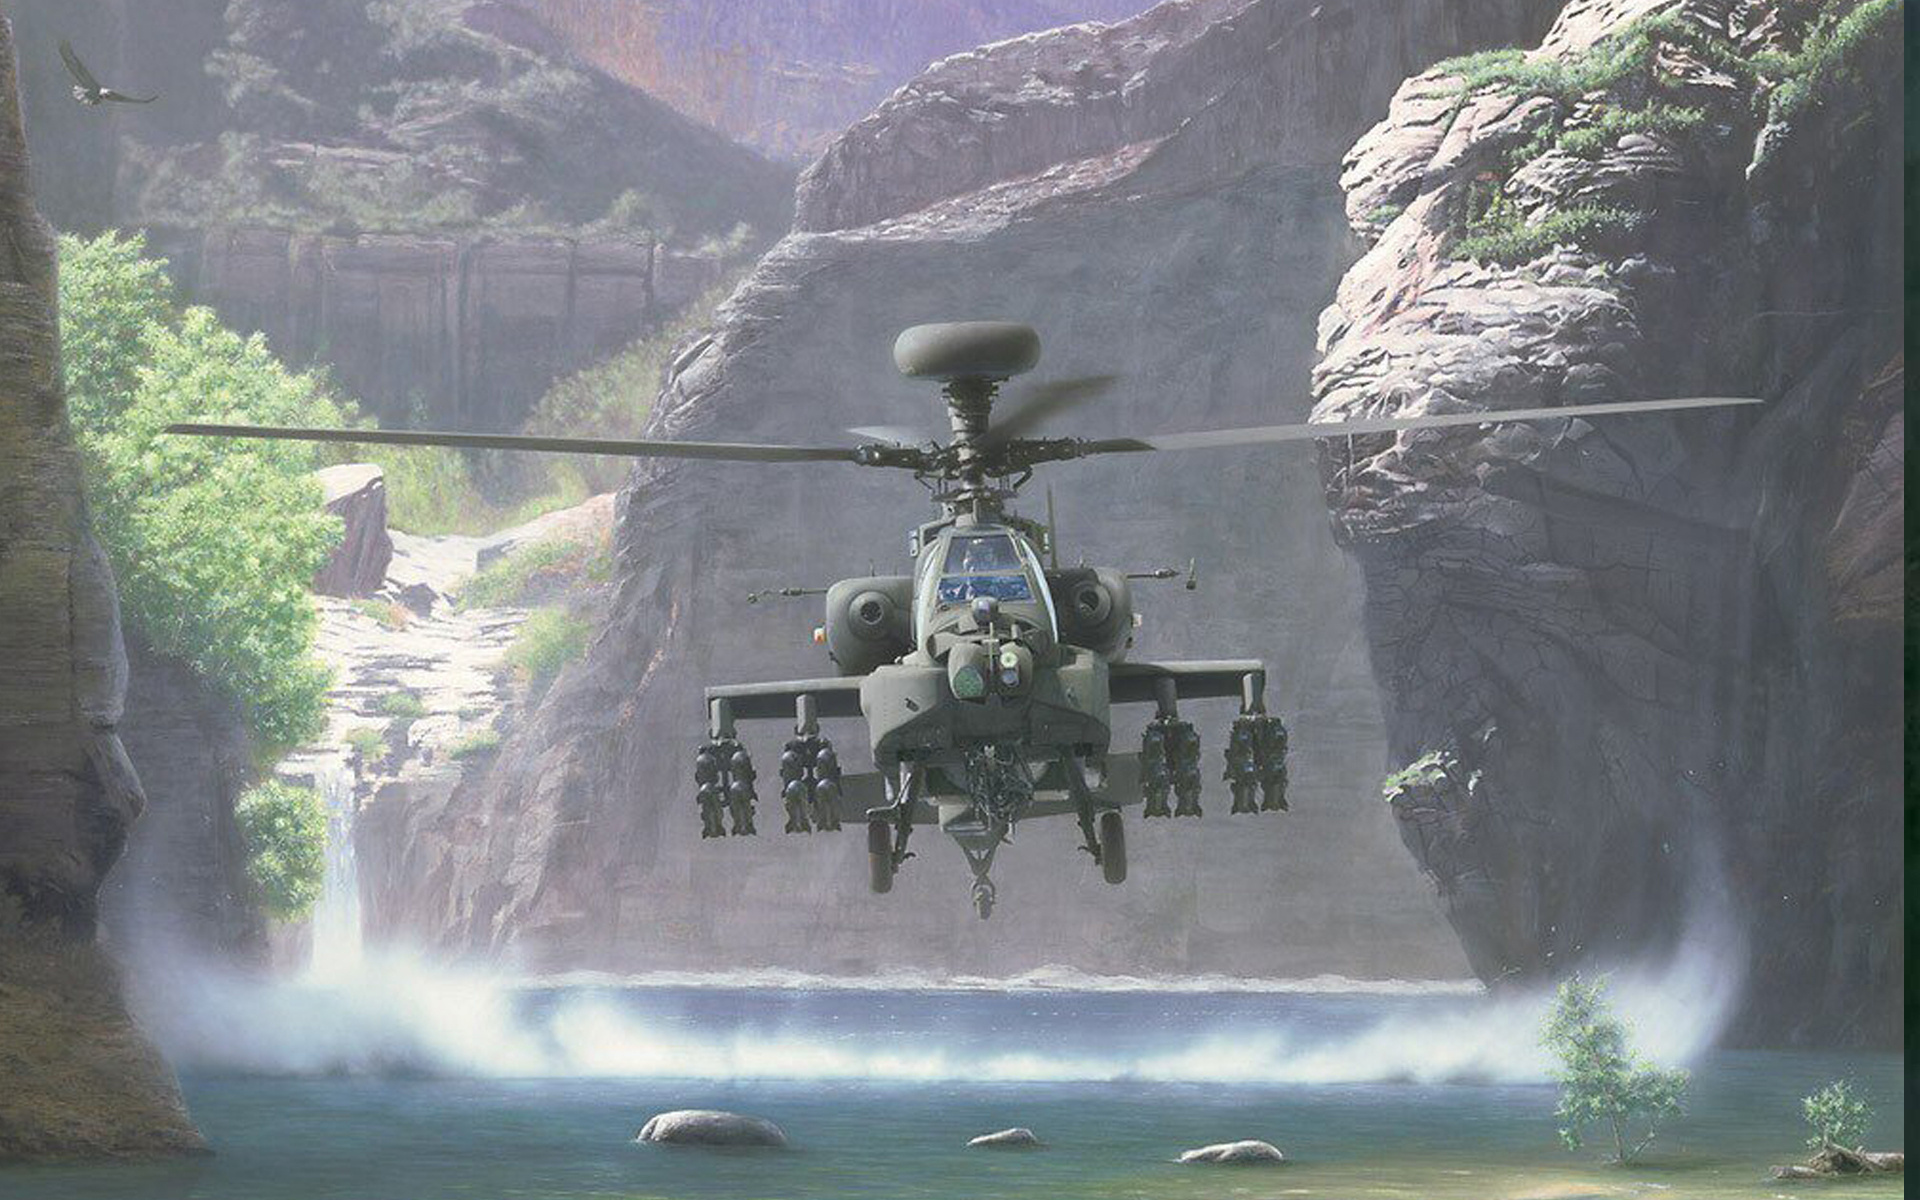 wallpaper helicopter Apache a jungle desktop HD Desktop Wallpapers 1920x1200